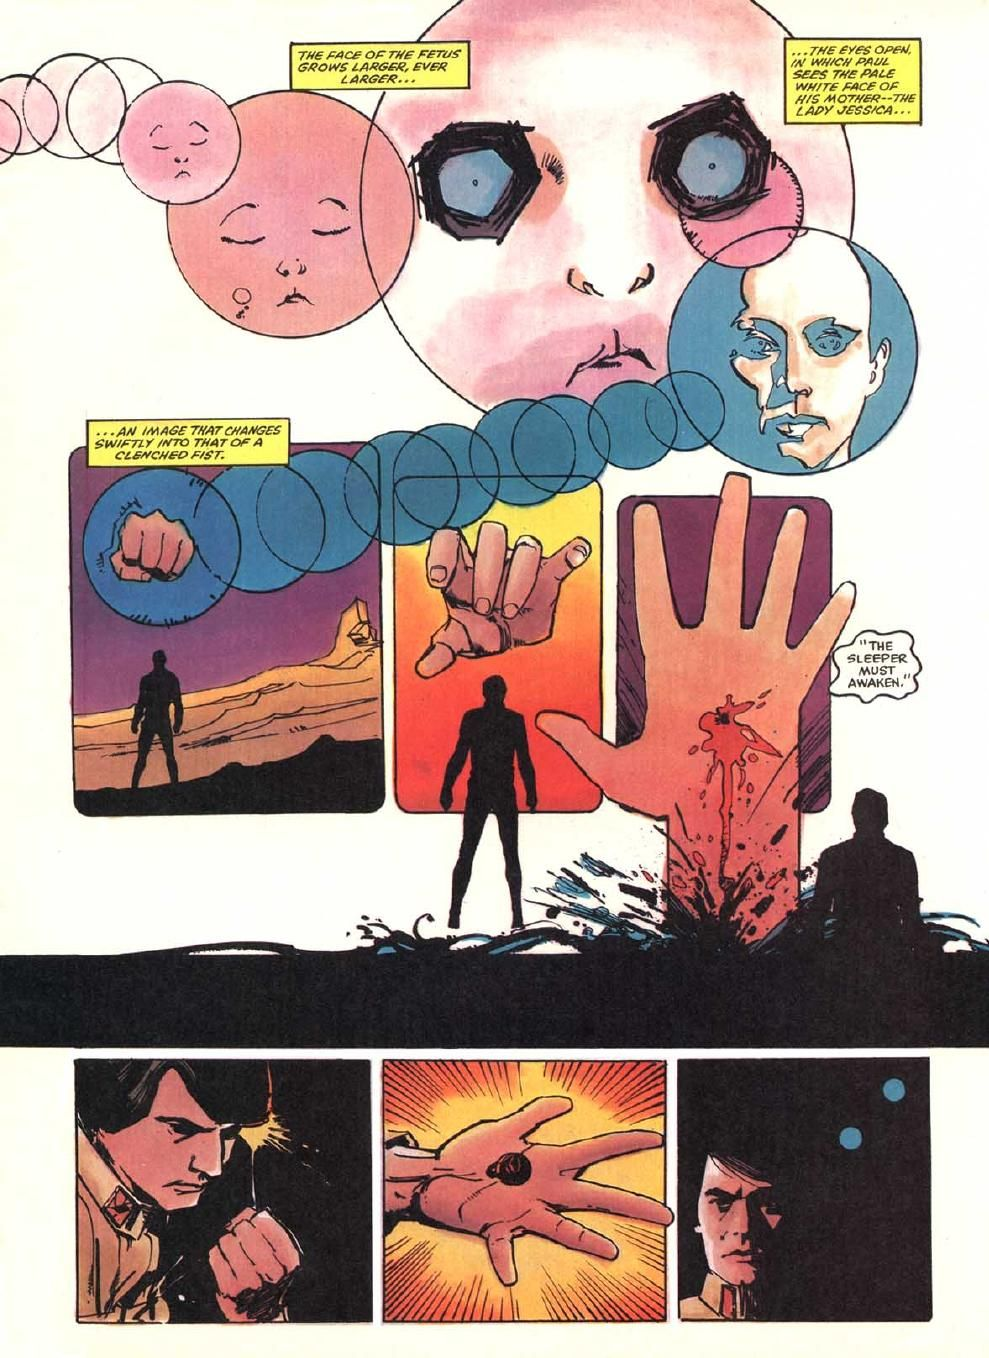 Ben Towle: Some Bill Sienkiewicz pages from the old Marvel...   Comic  layout, Comic books art, Comic illustration